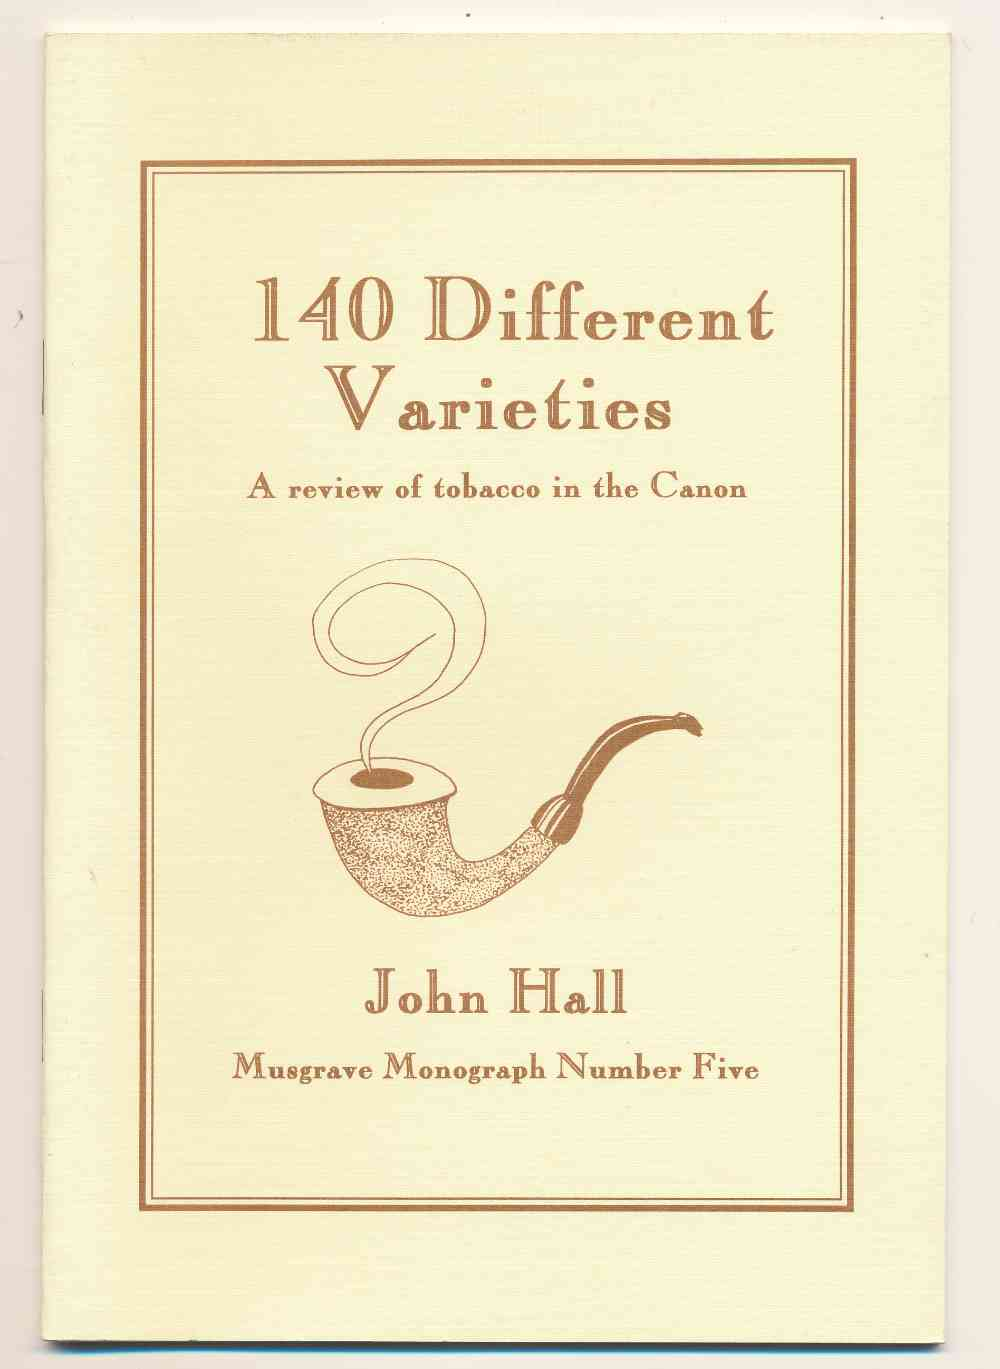 140 different varieties : a review of tobacco in the canon